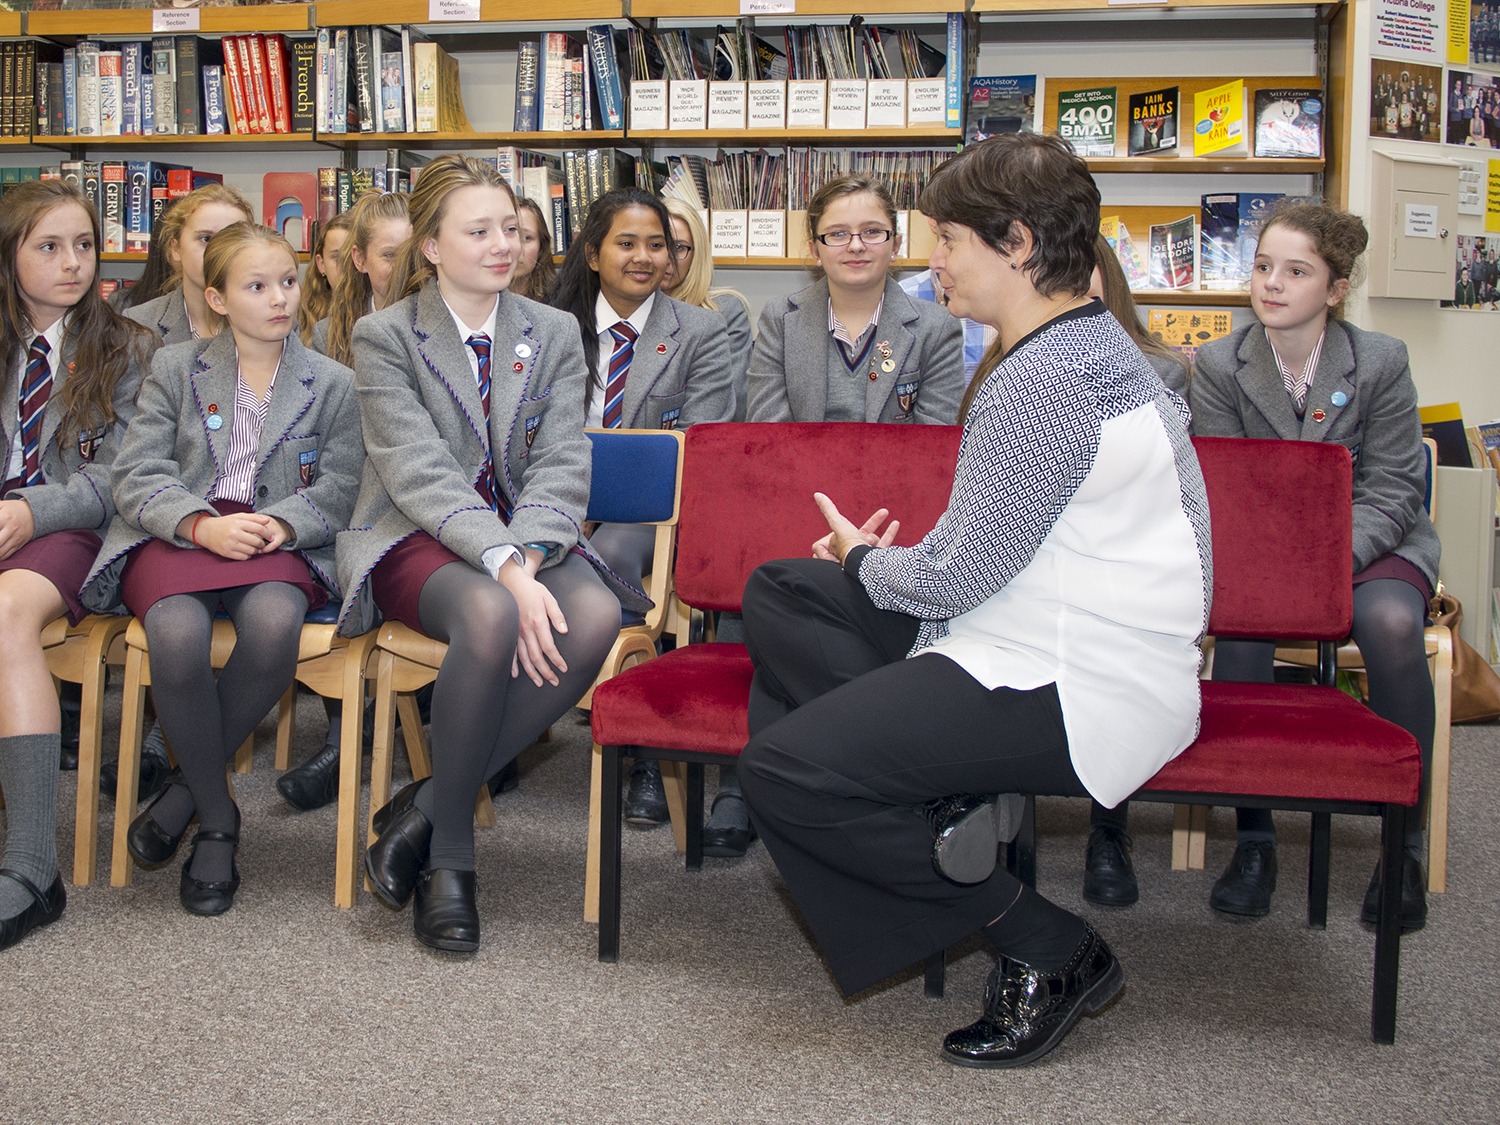 Commissioner for Children and Young People visits VCB